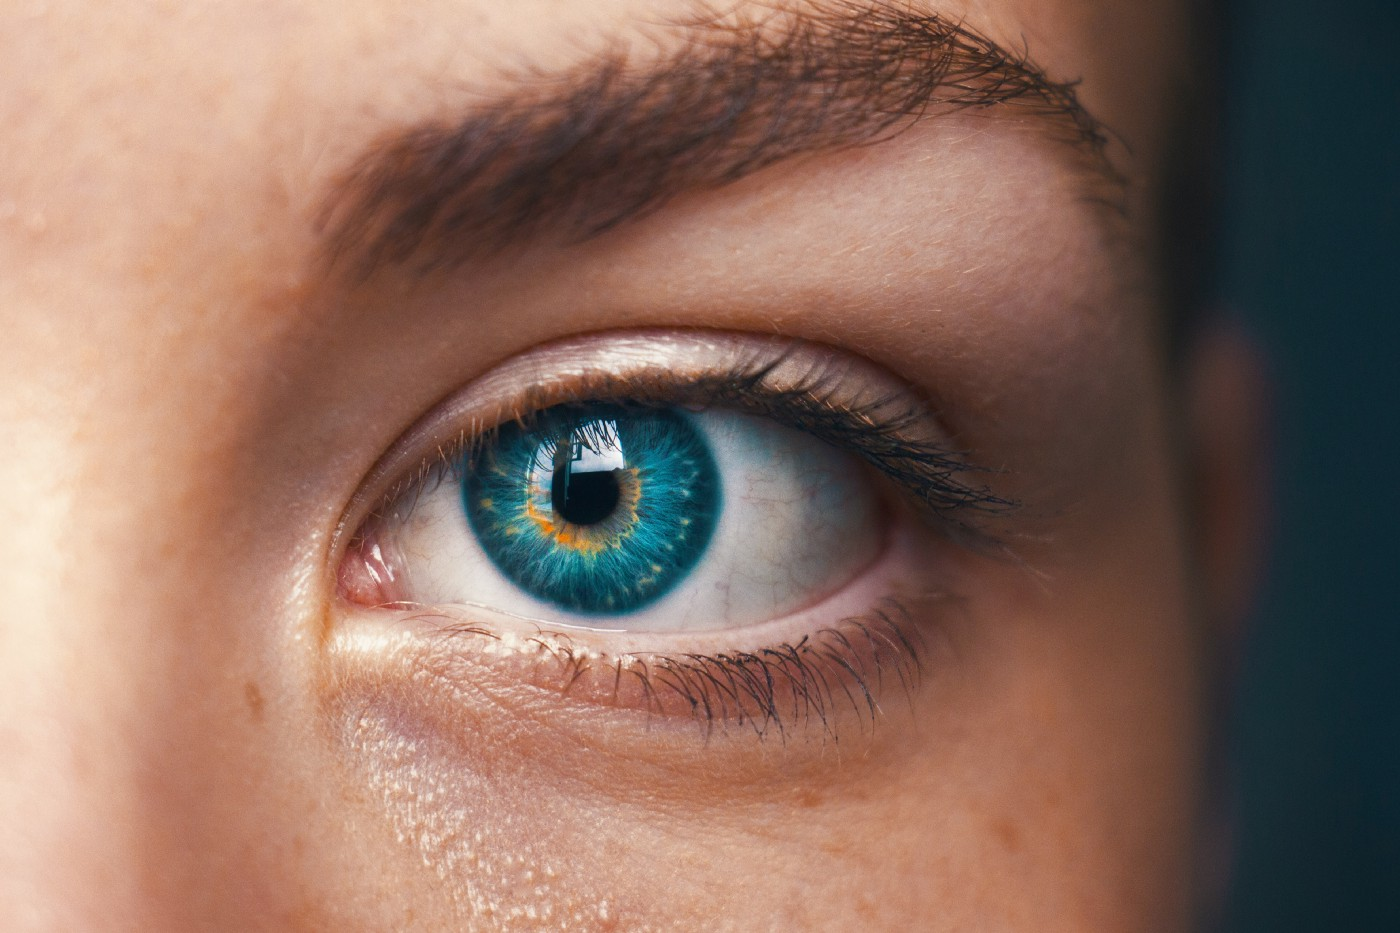 Close-up of a person's eye.